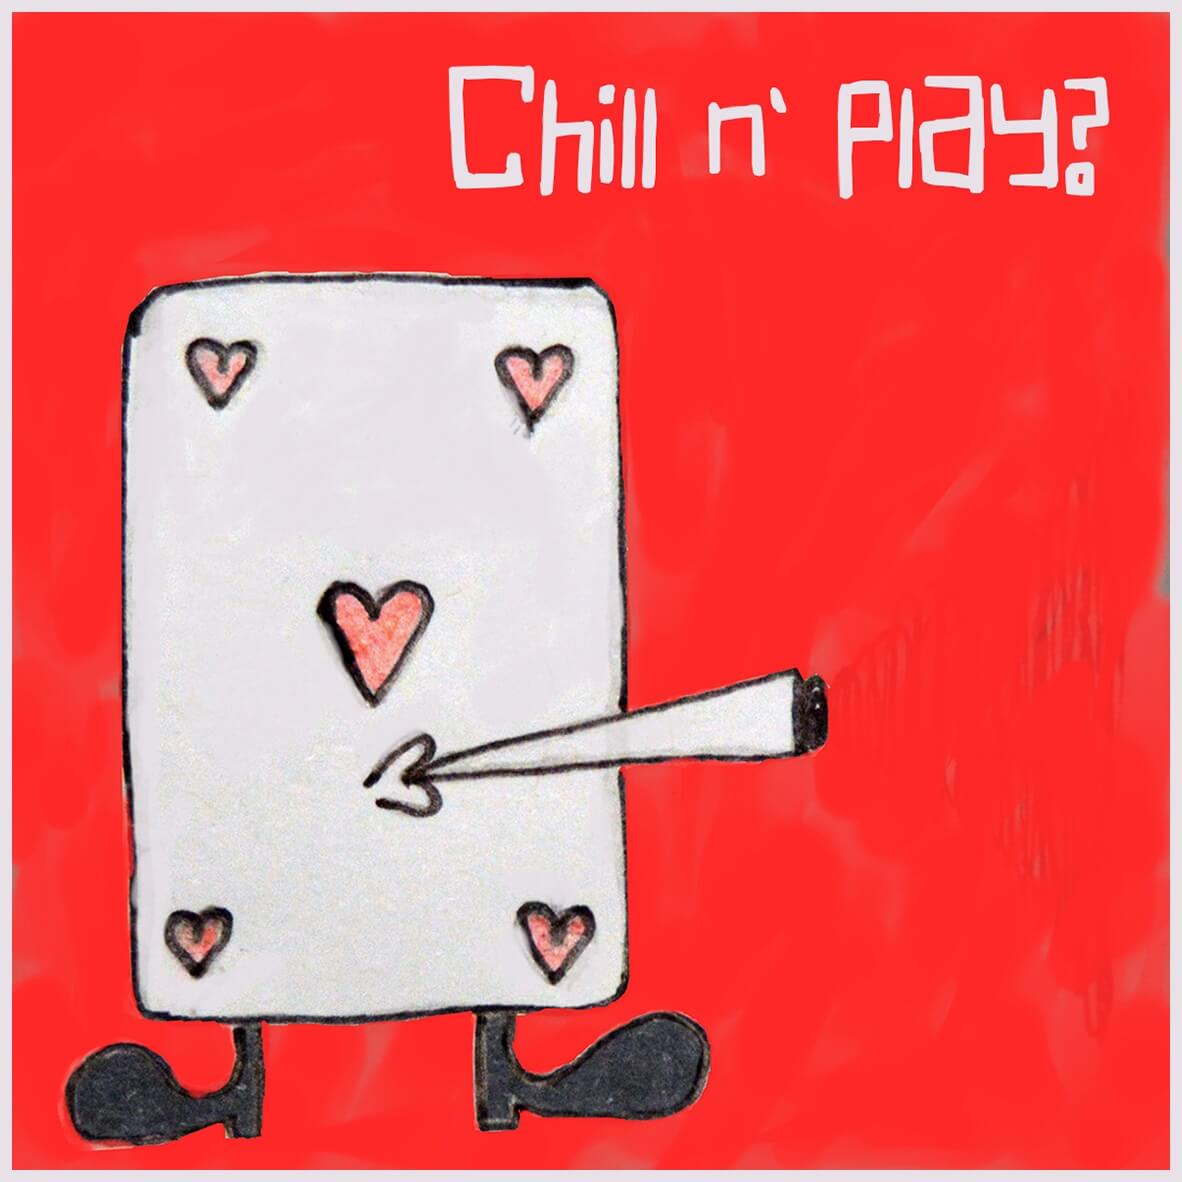 Chill_n_play